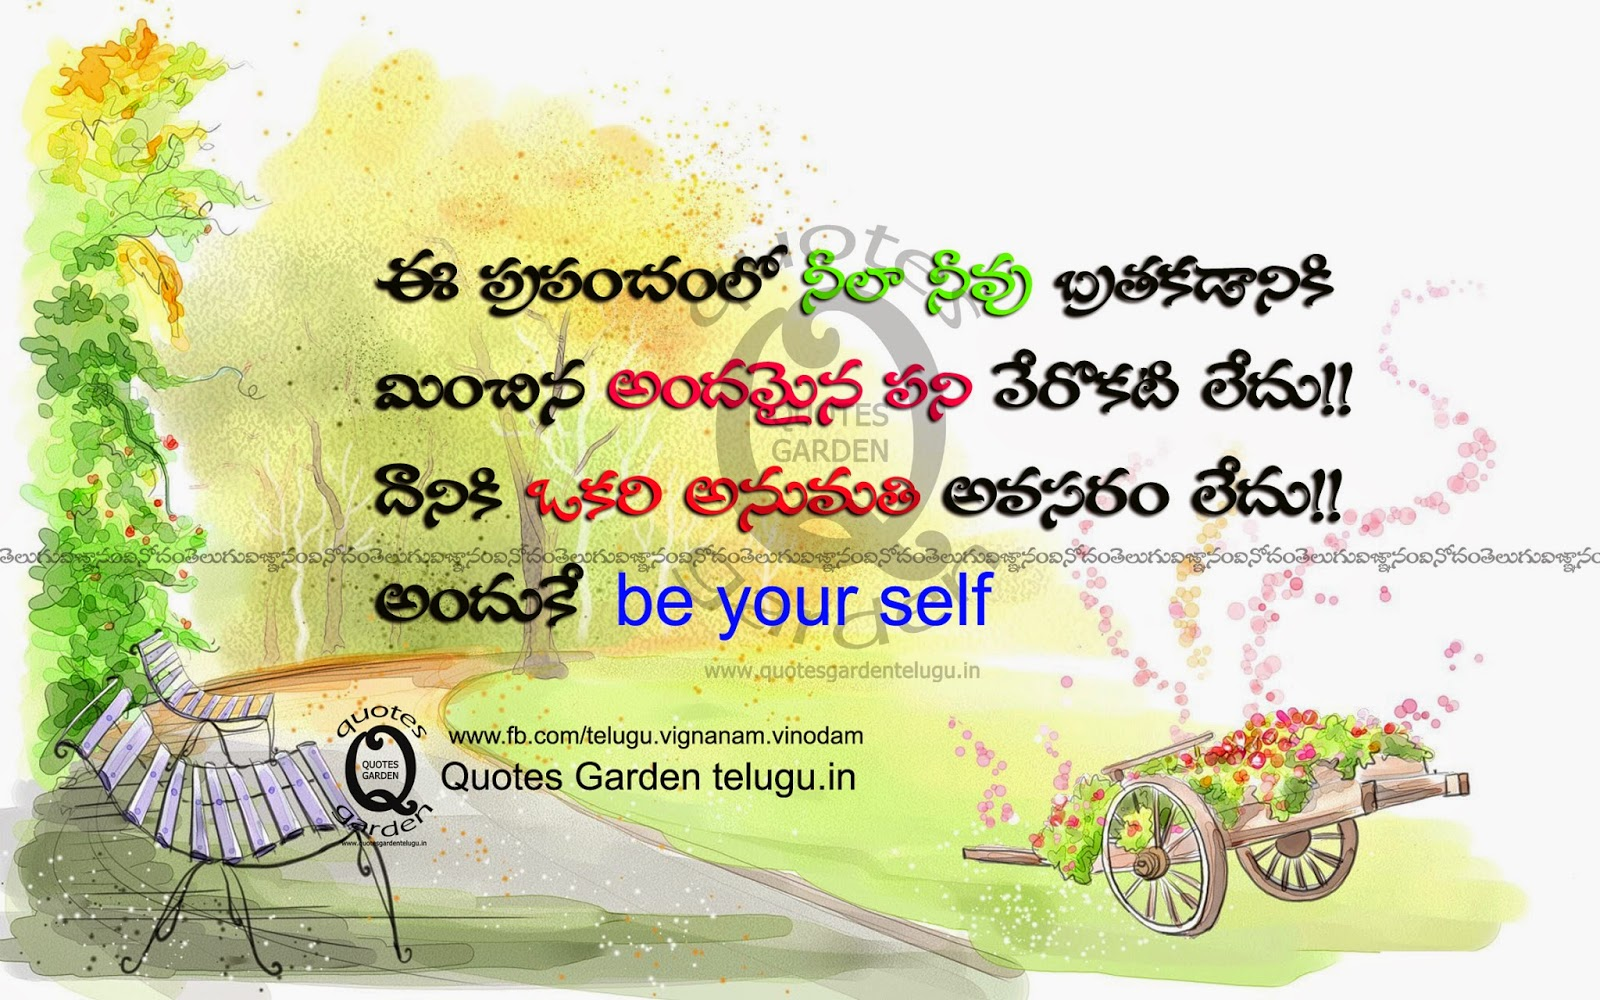 Inspirational life quotes images in telugu